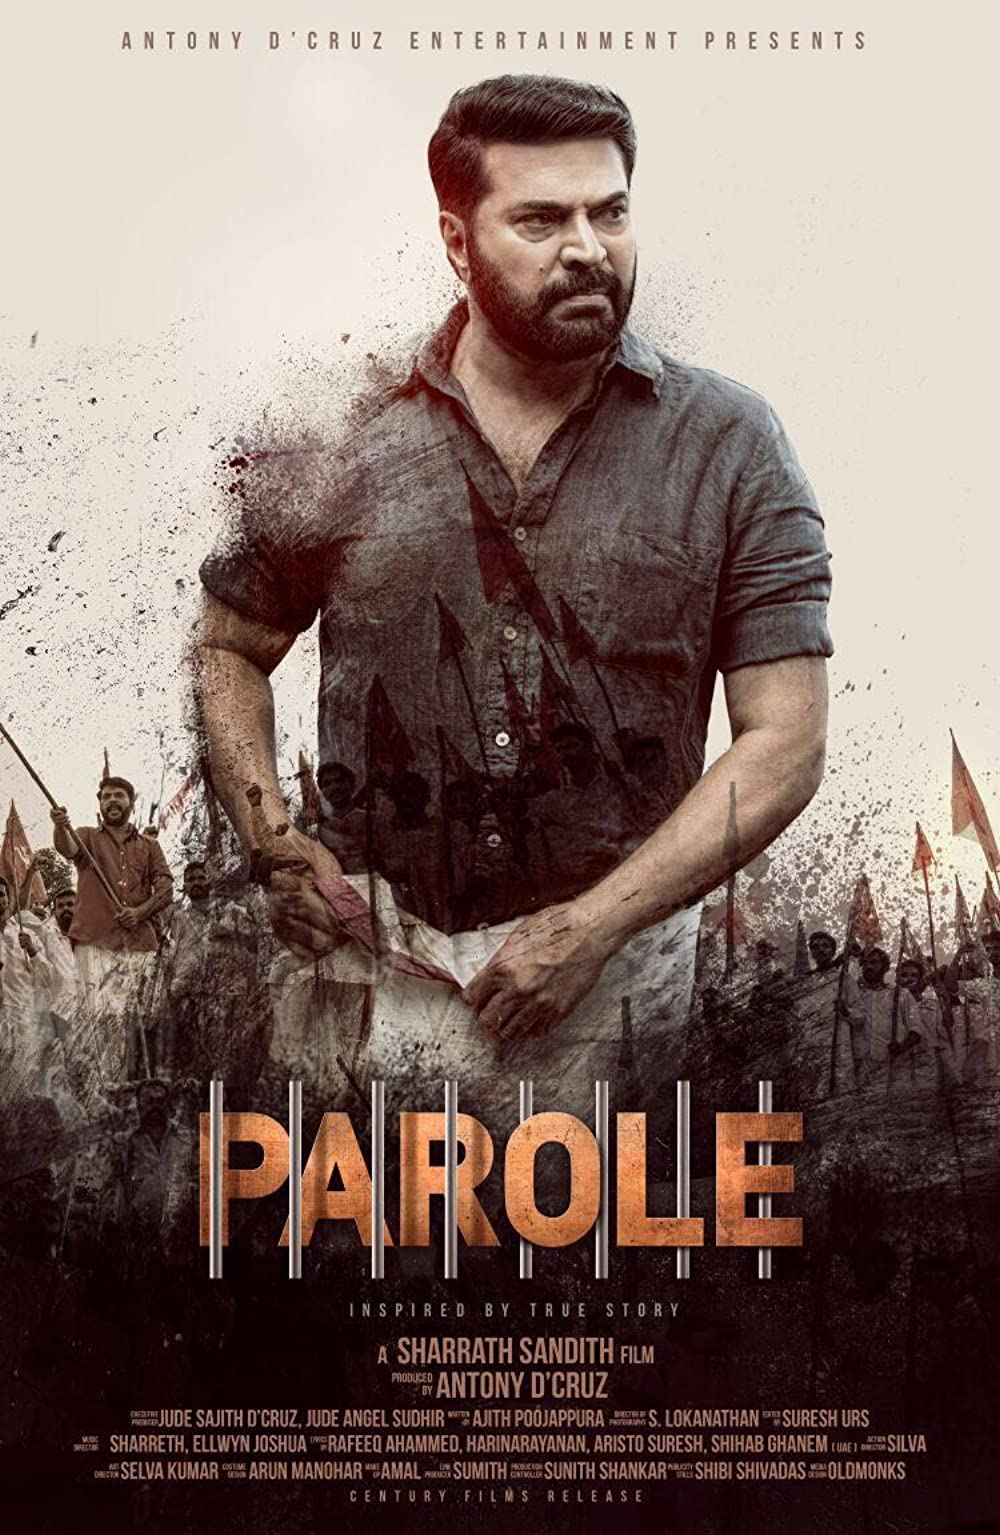 Parol (Parole) 2021 Hindi Dubbed 1080p HDRip 1440MB Download